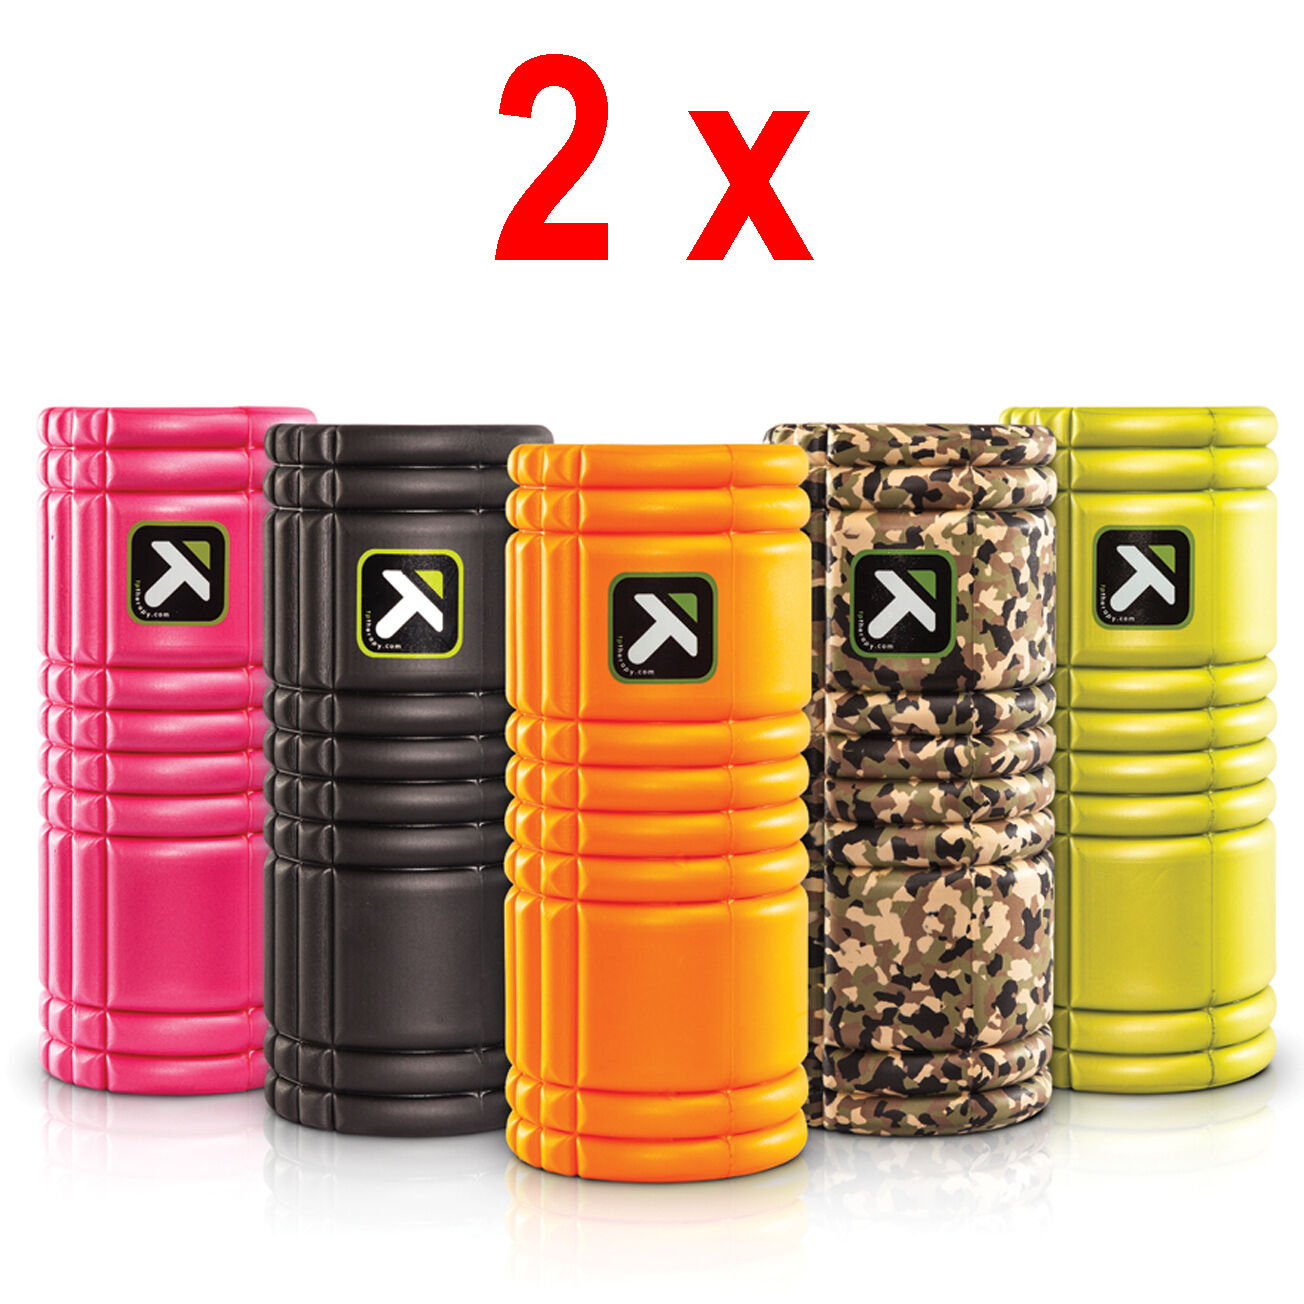 2 x Trigger Point GRID Foam Roller Fitness Massage Rolle REHA THERAPIE